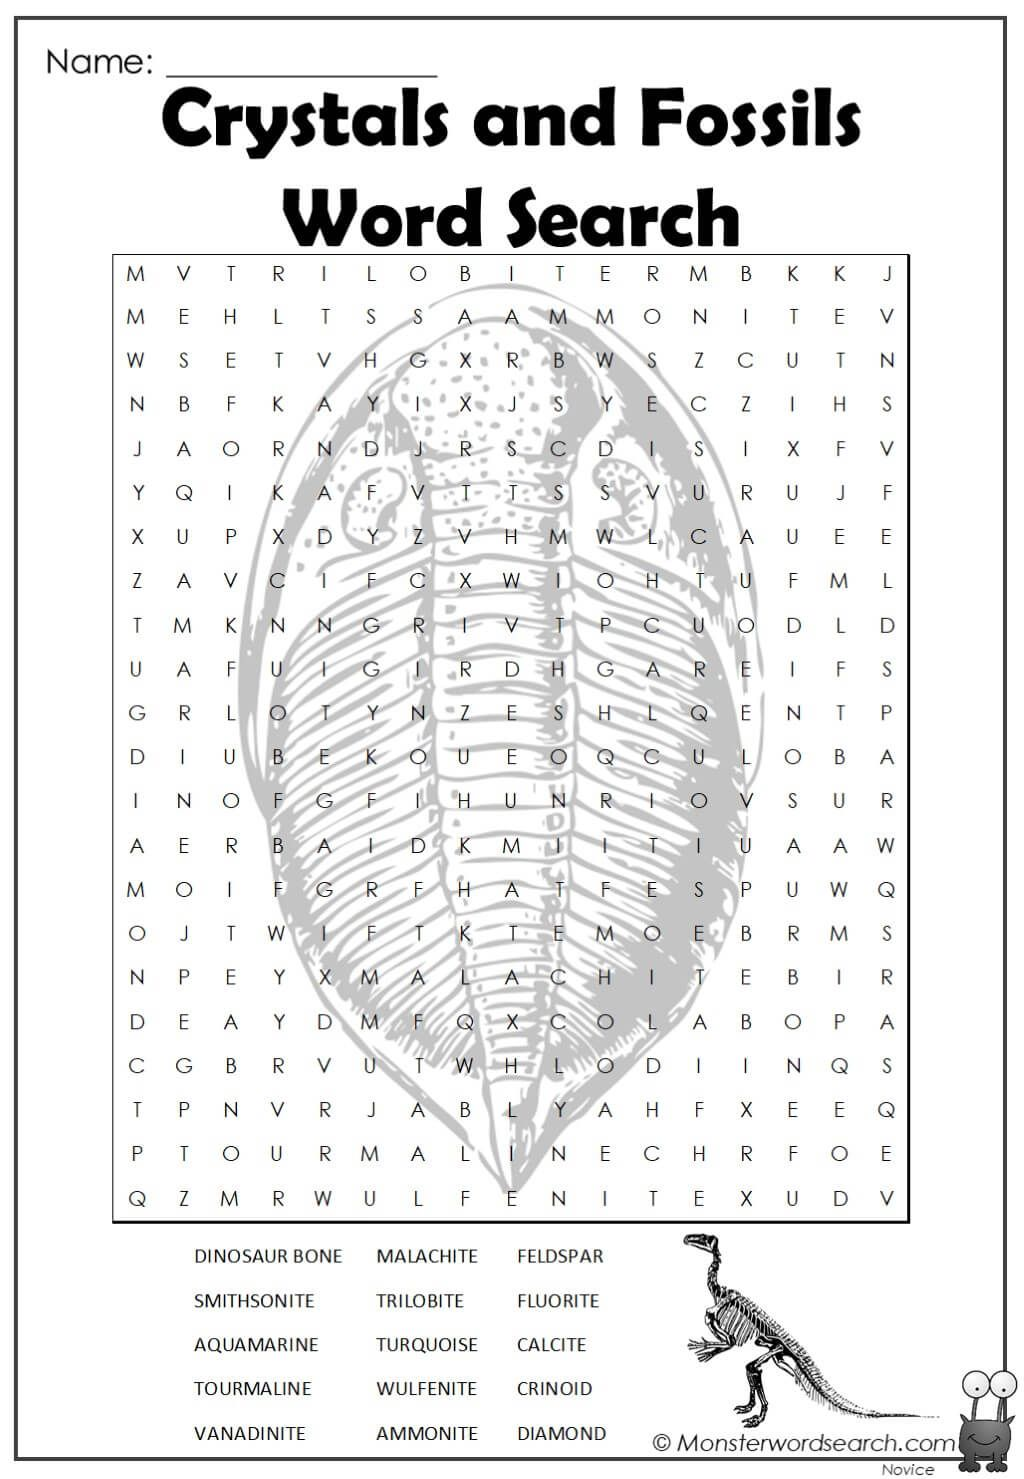 Crystals And Fossils Word Search In 2020 Crystals Fossils Word Search